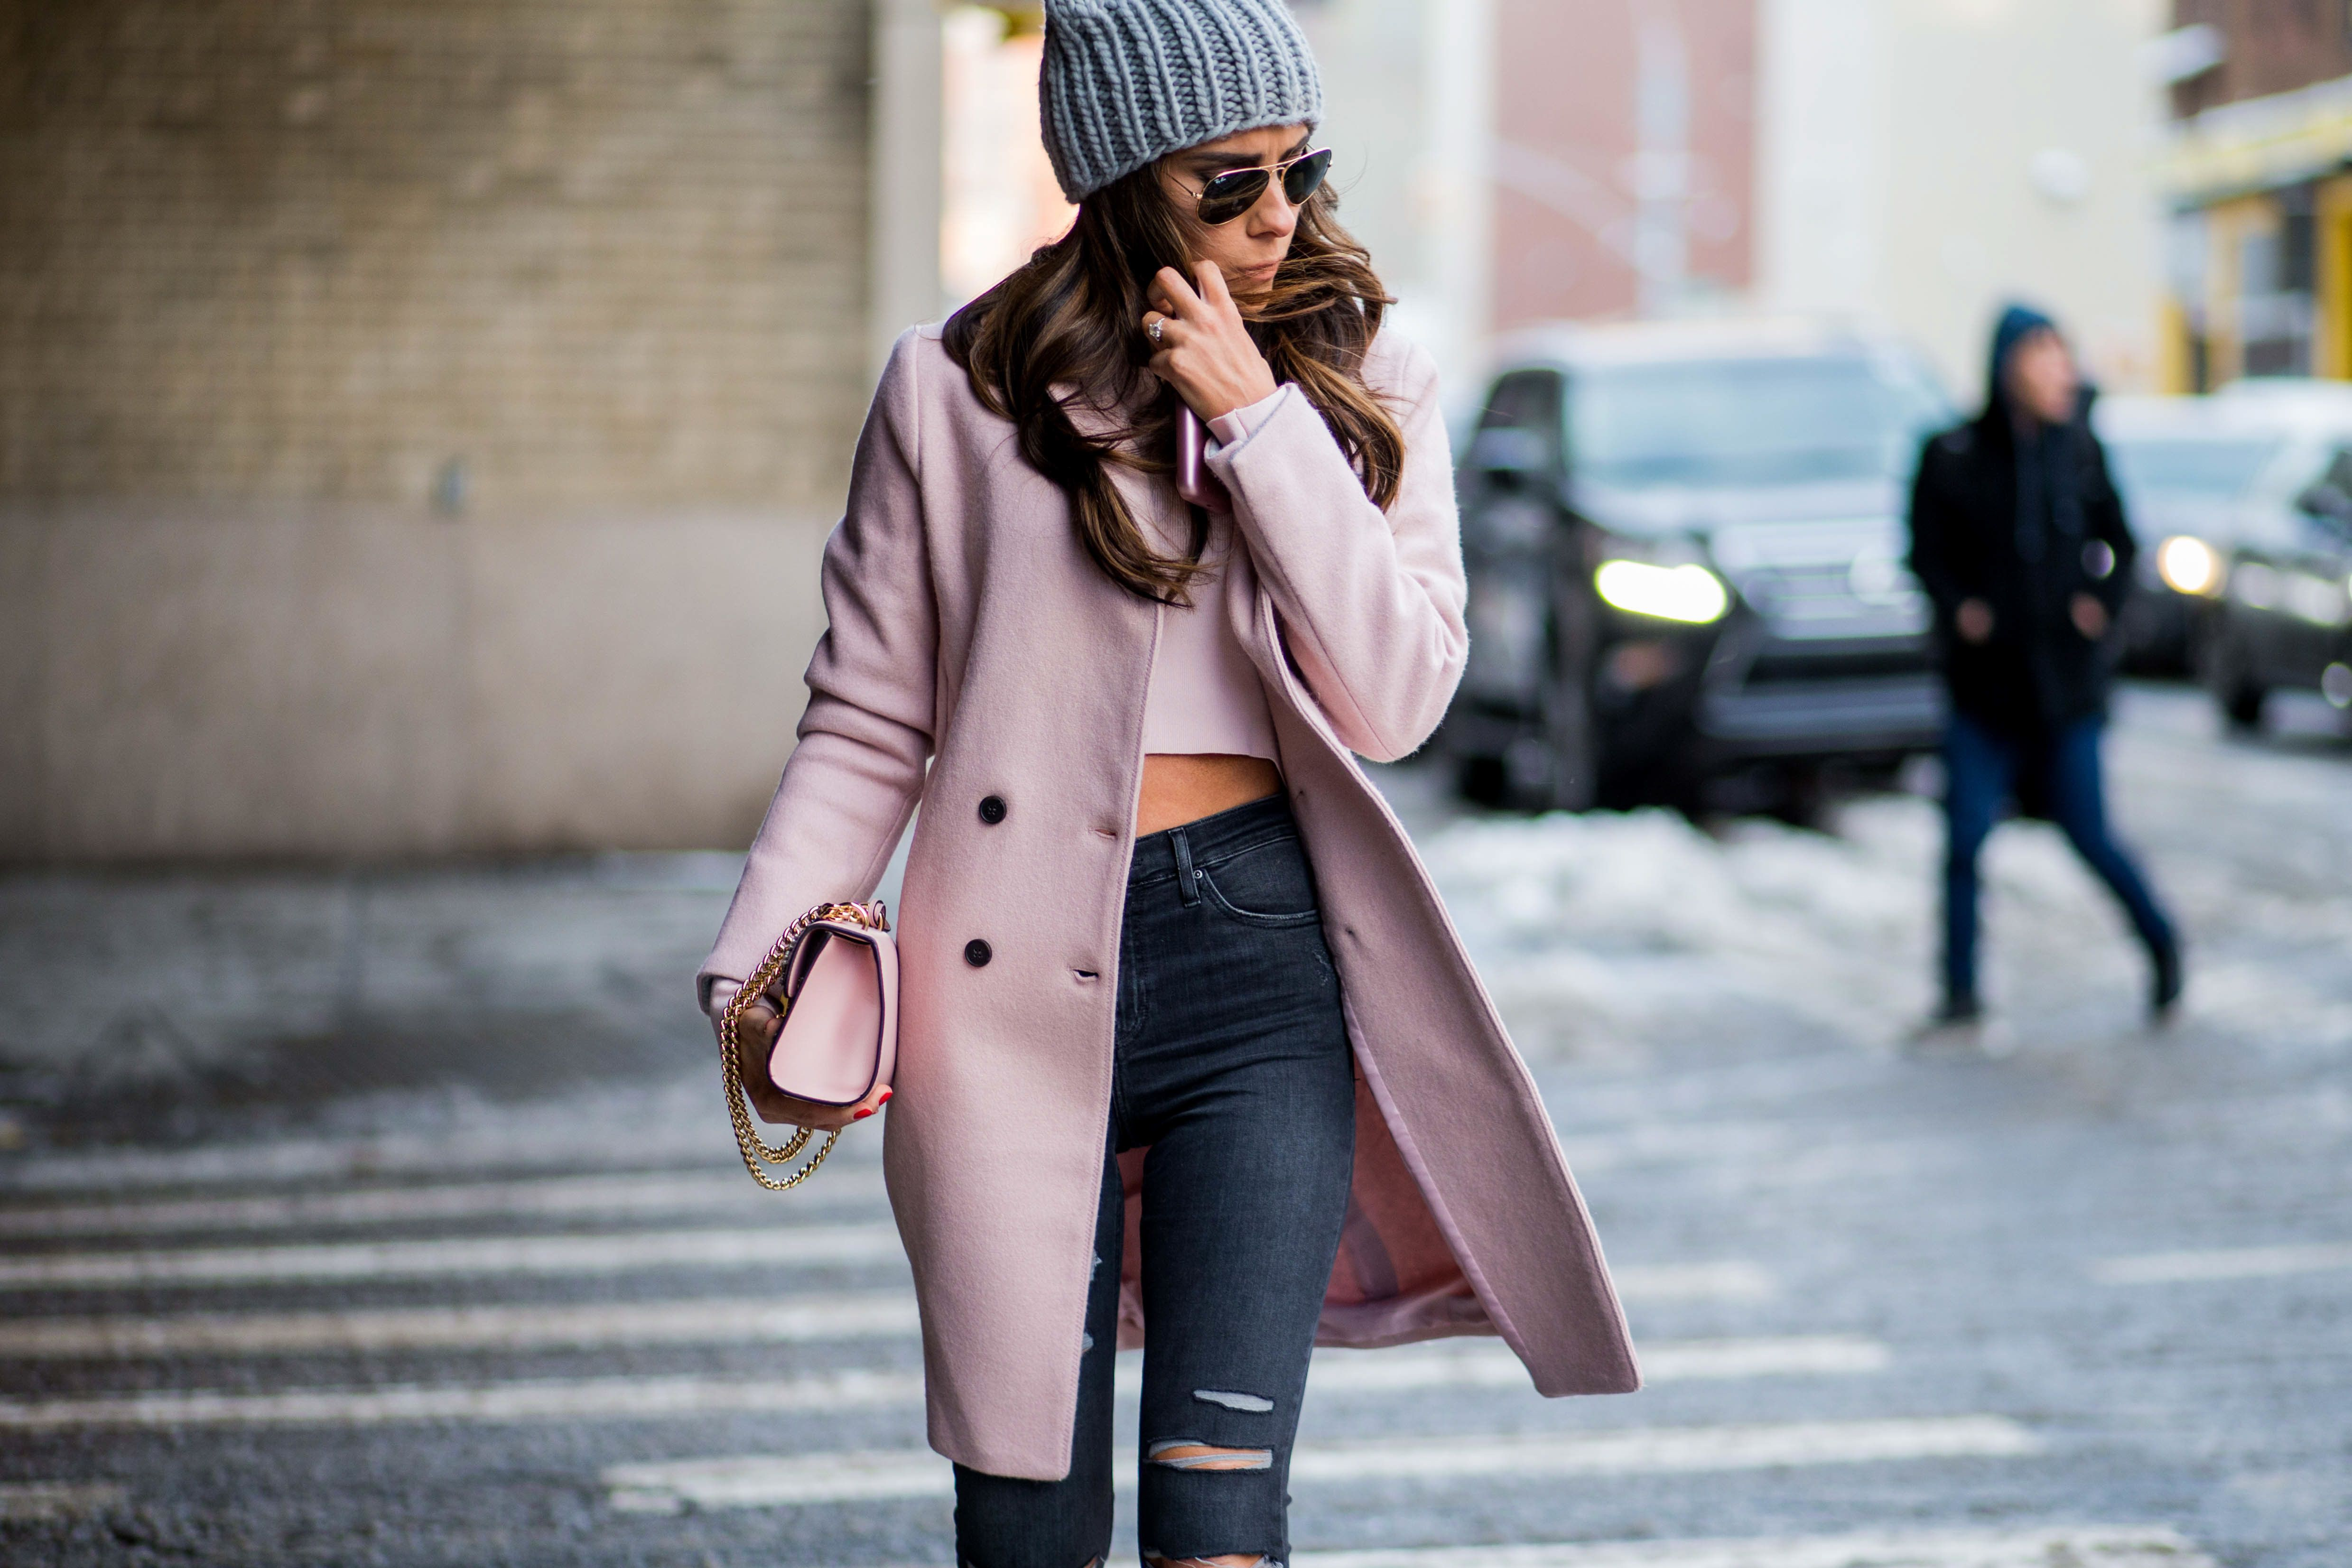 NEW YORK, NY - FEBRUARY 09:  A guest wearing a pink coat, beanie, pink top, denim jeans outside Noon by Noor on February 9, 2017 in New York City.  (Photo by Christian Vierig/Getty Images)